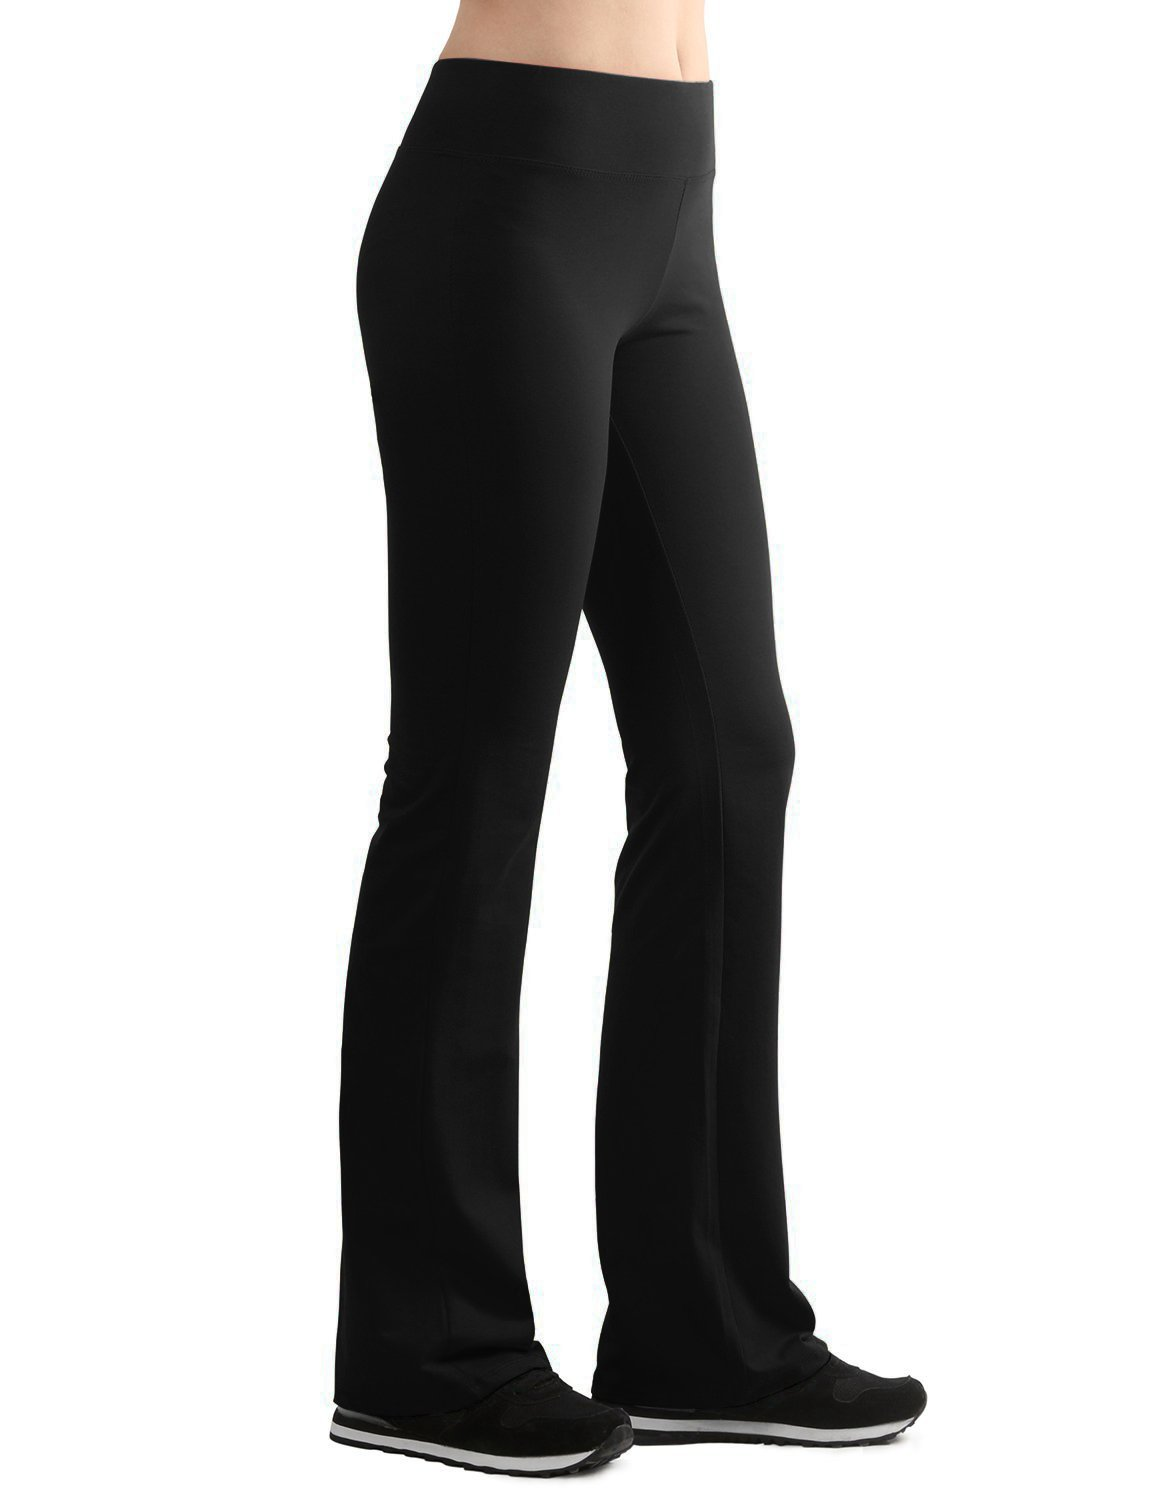 WB961 Womens Slim-Fit Bootleg Yoga Pants L Black by Lock and Love